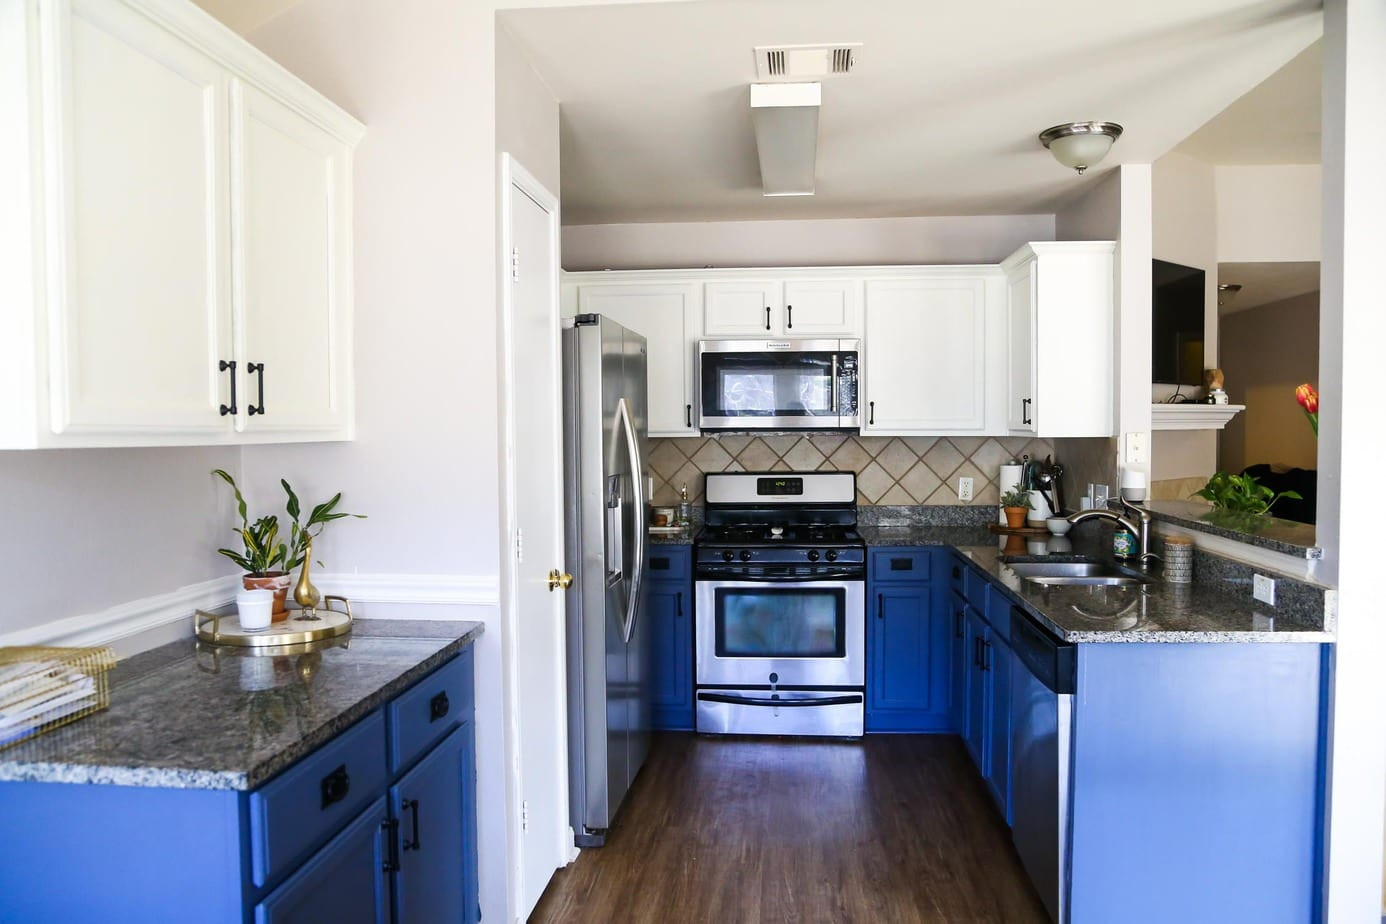 Best ideas about Blue And White Kitchen Ideas . Save or Pin Blue & White Kitchen Cabinets Now.